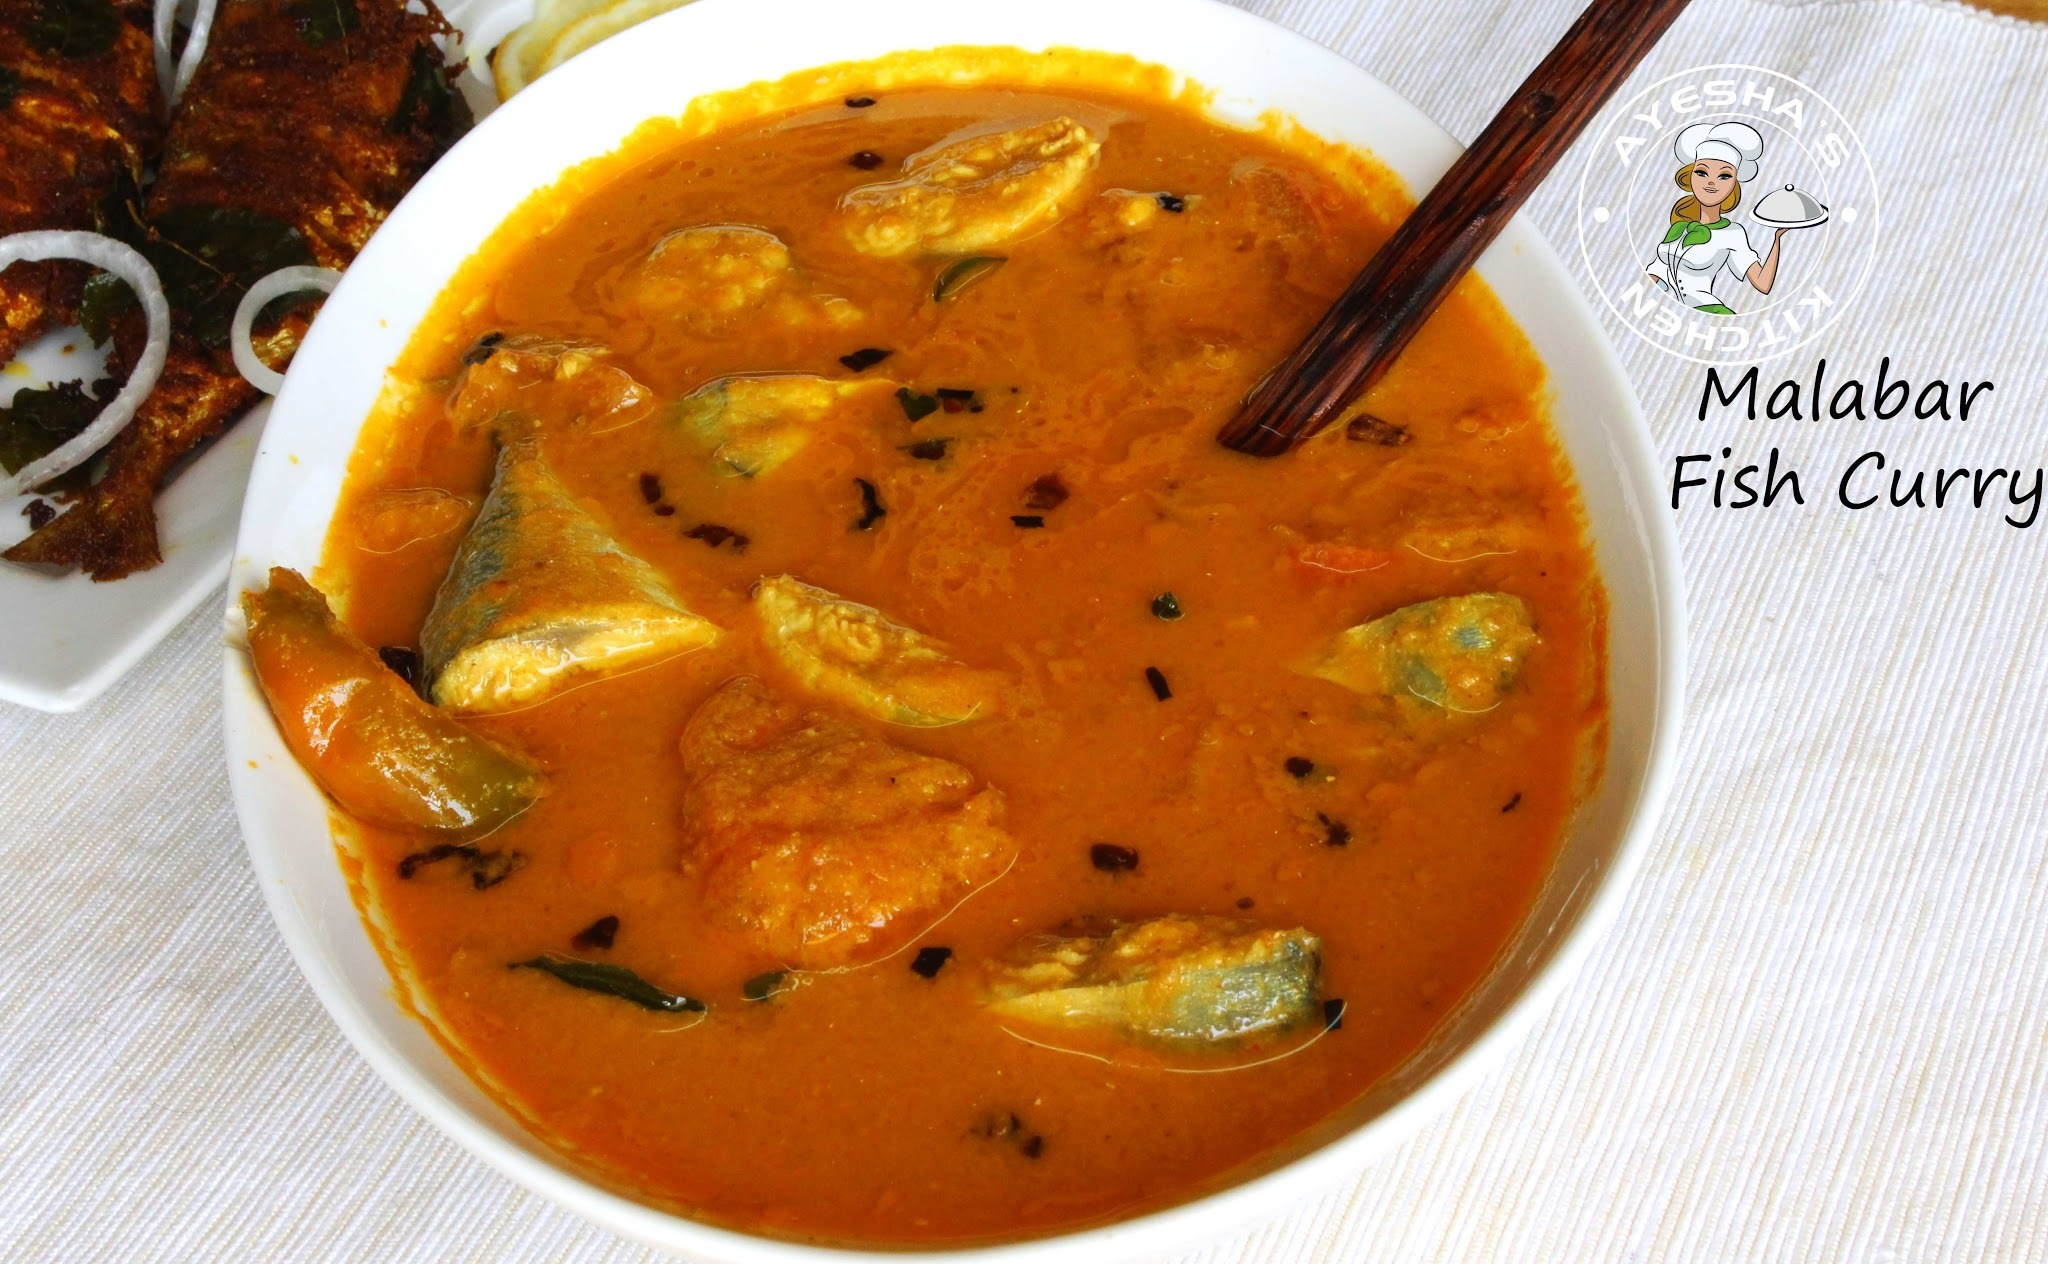 MALABAR FISH CURRY RECIPE - SIMPLE FISH RECIPES